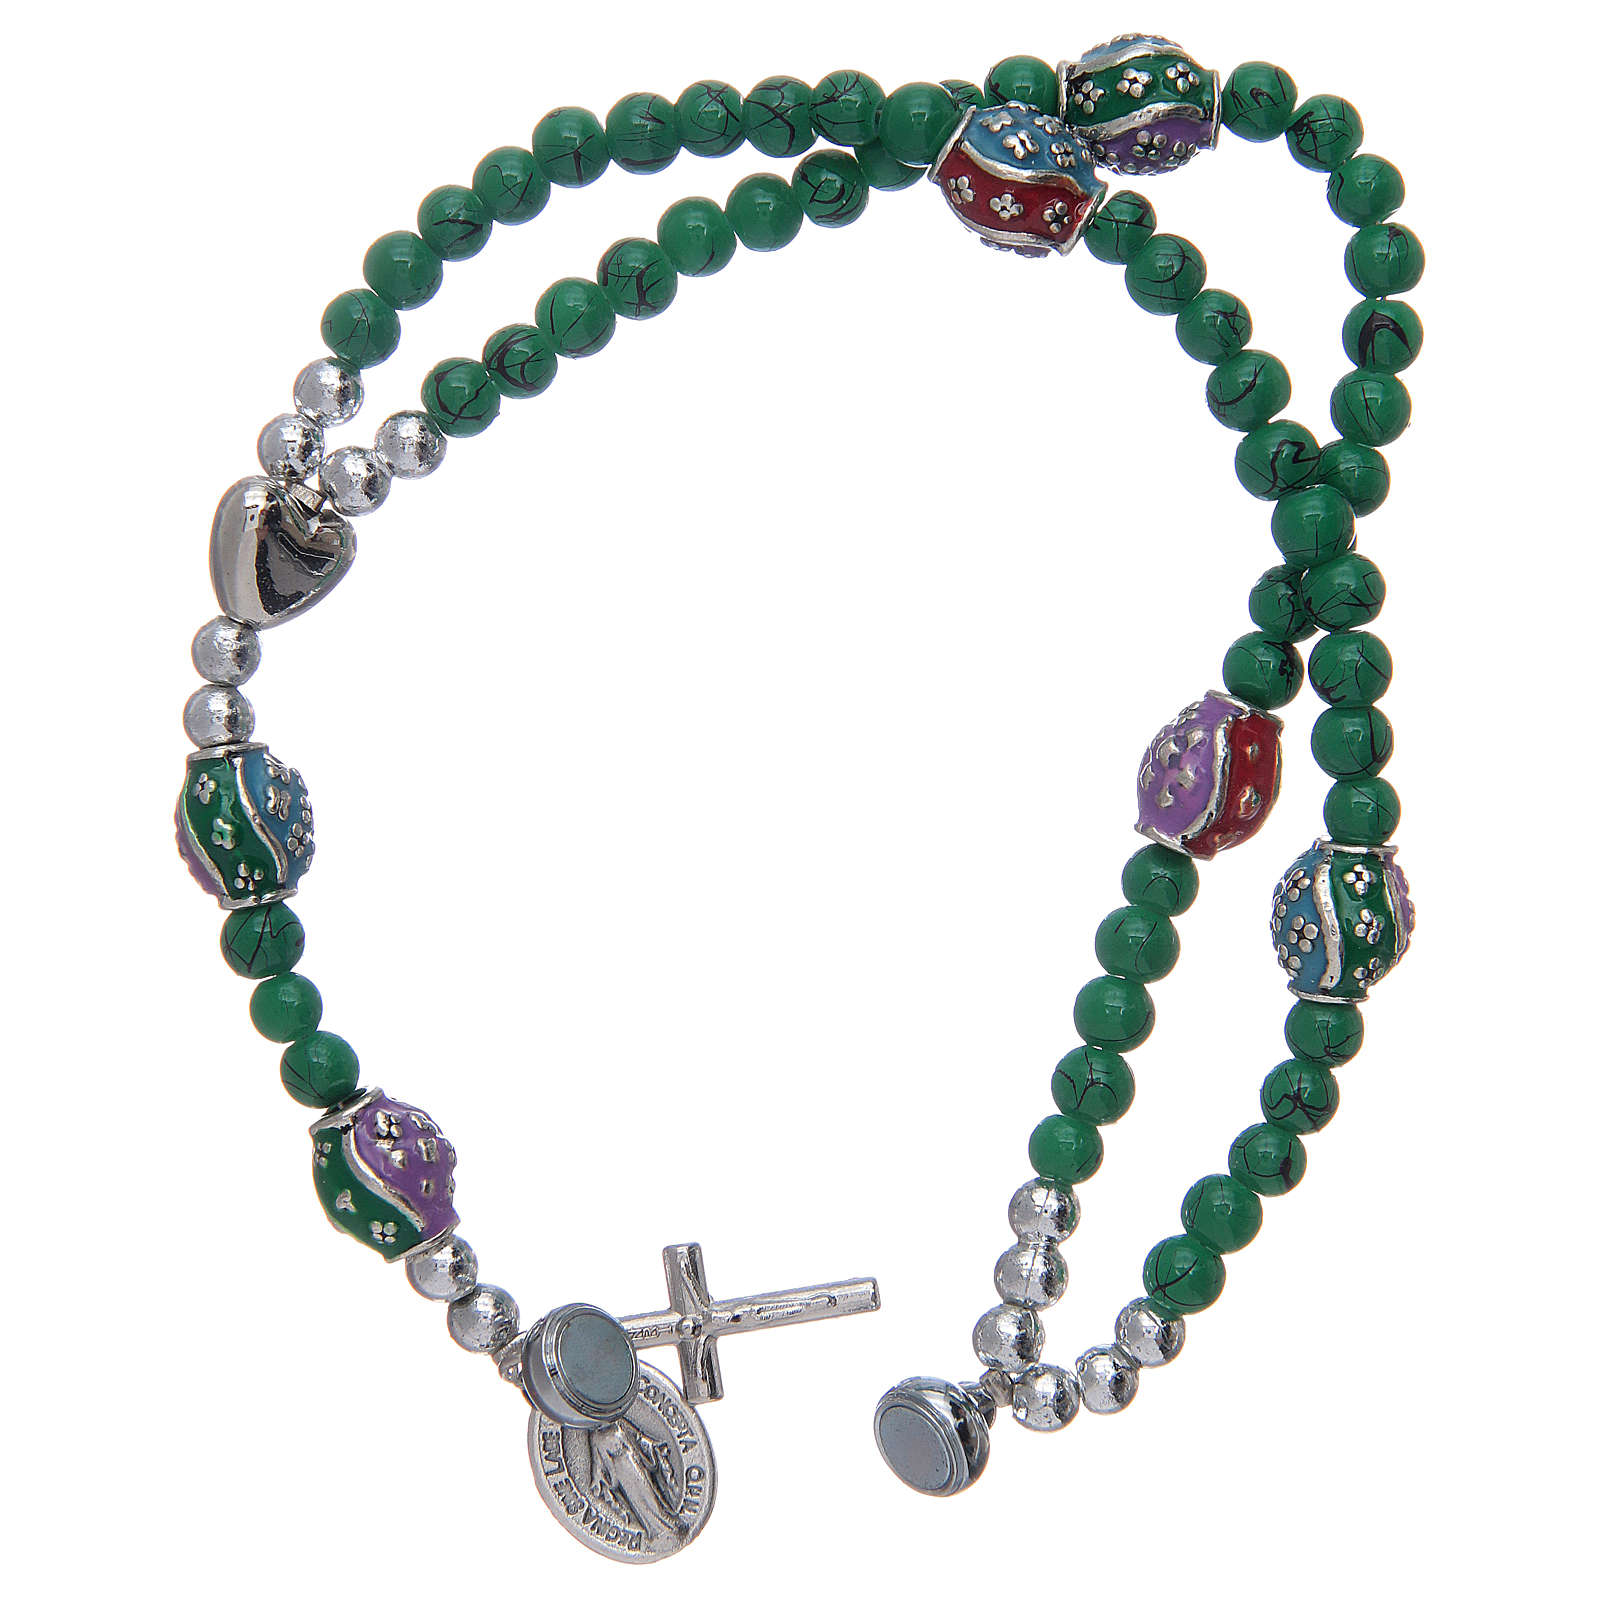 Rosary bracelet with glass grains 4 mm and green polished metal 4